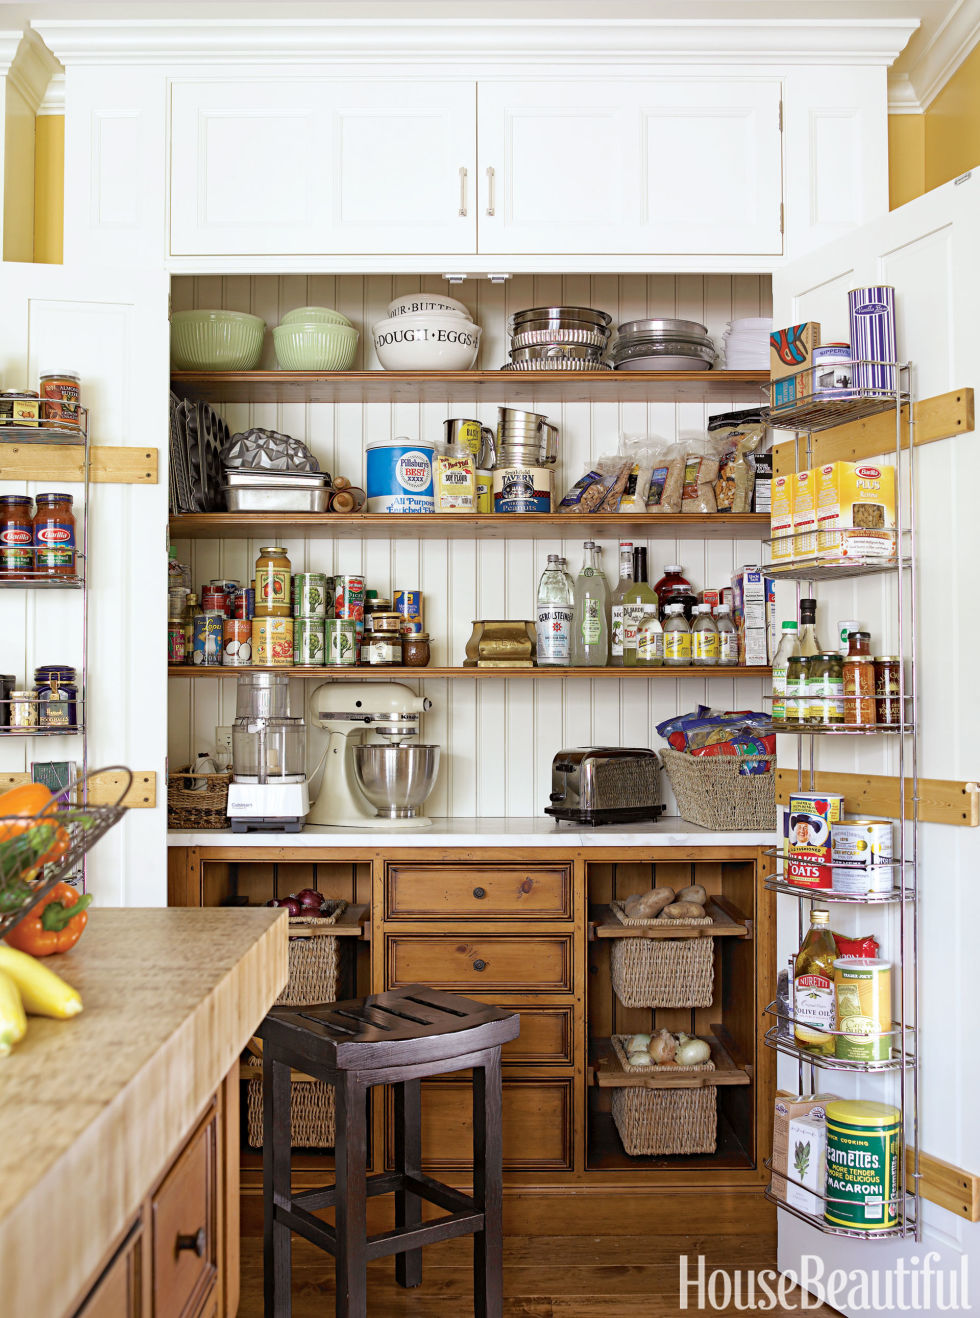 - 20 Unique Kitchen Storage Ideas - Easy Storage Solutions For Kitchens